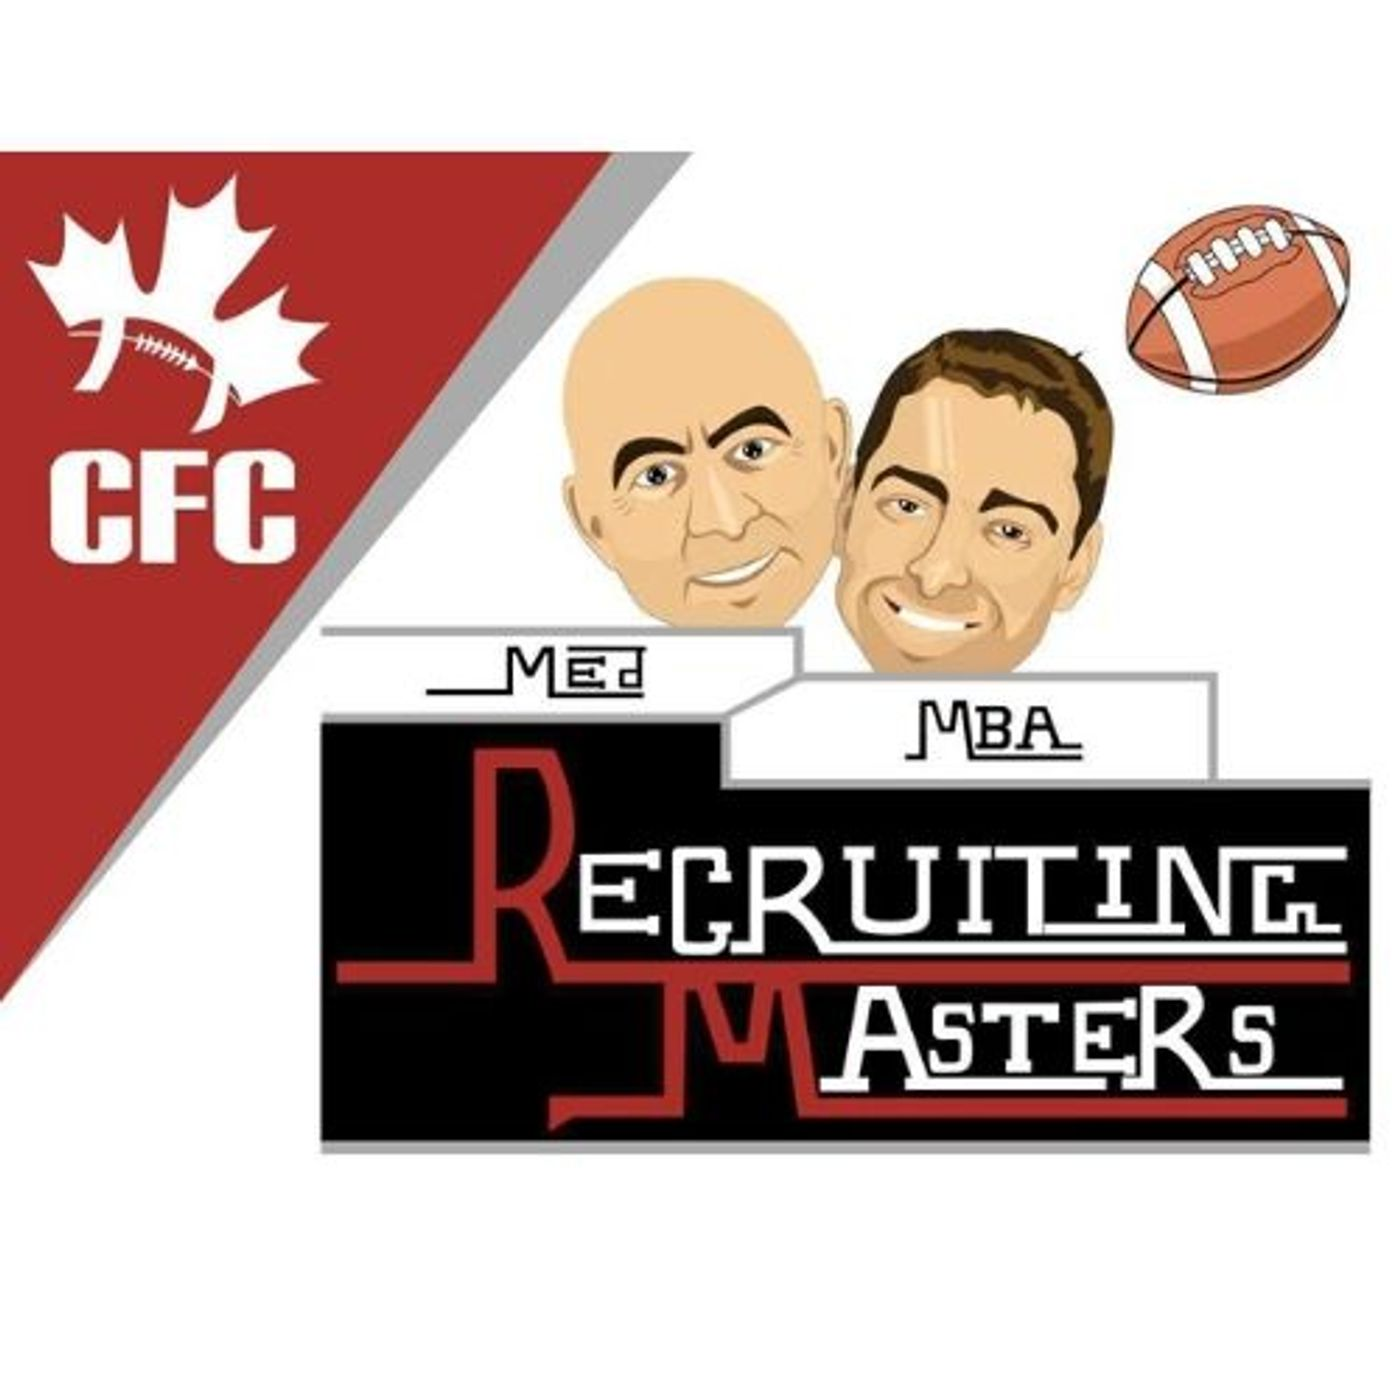 CFC100 Ajay Chol leading the fight against racism  |  Recruiting Masters Special Edition